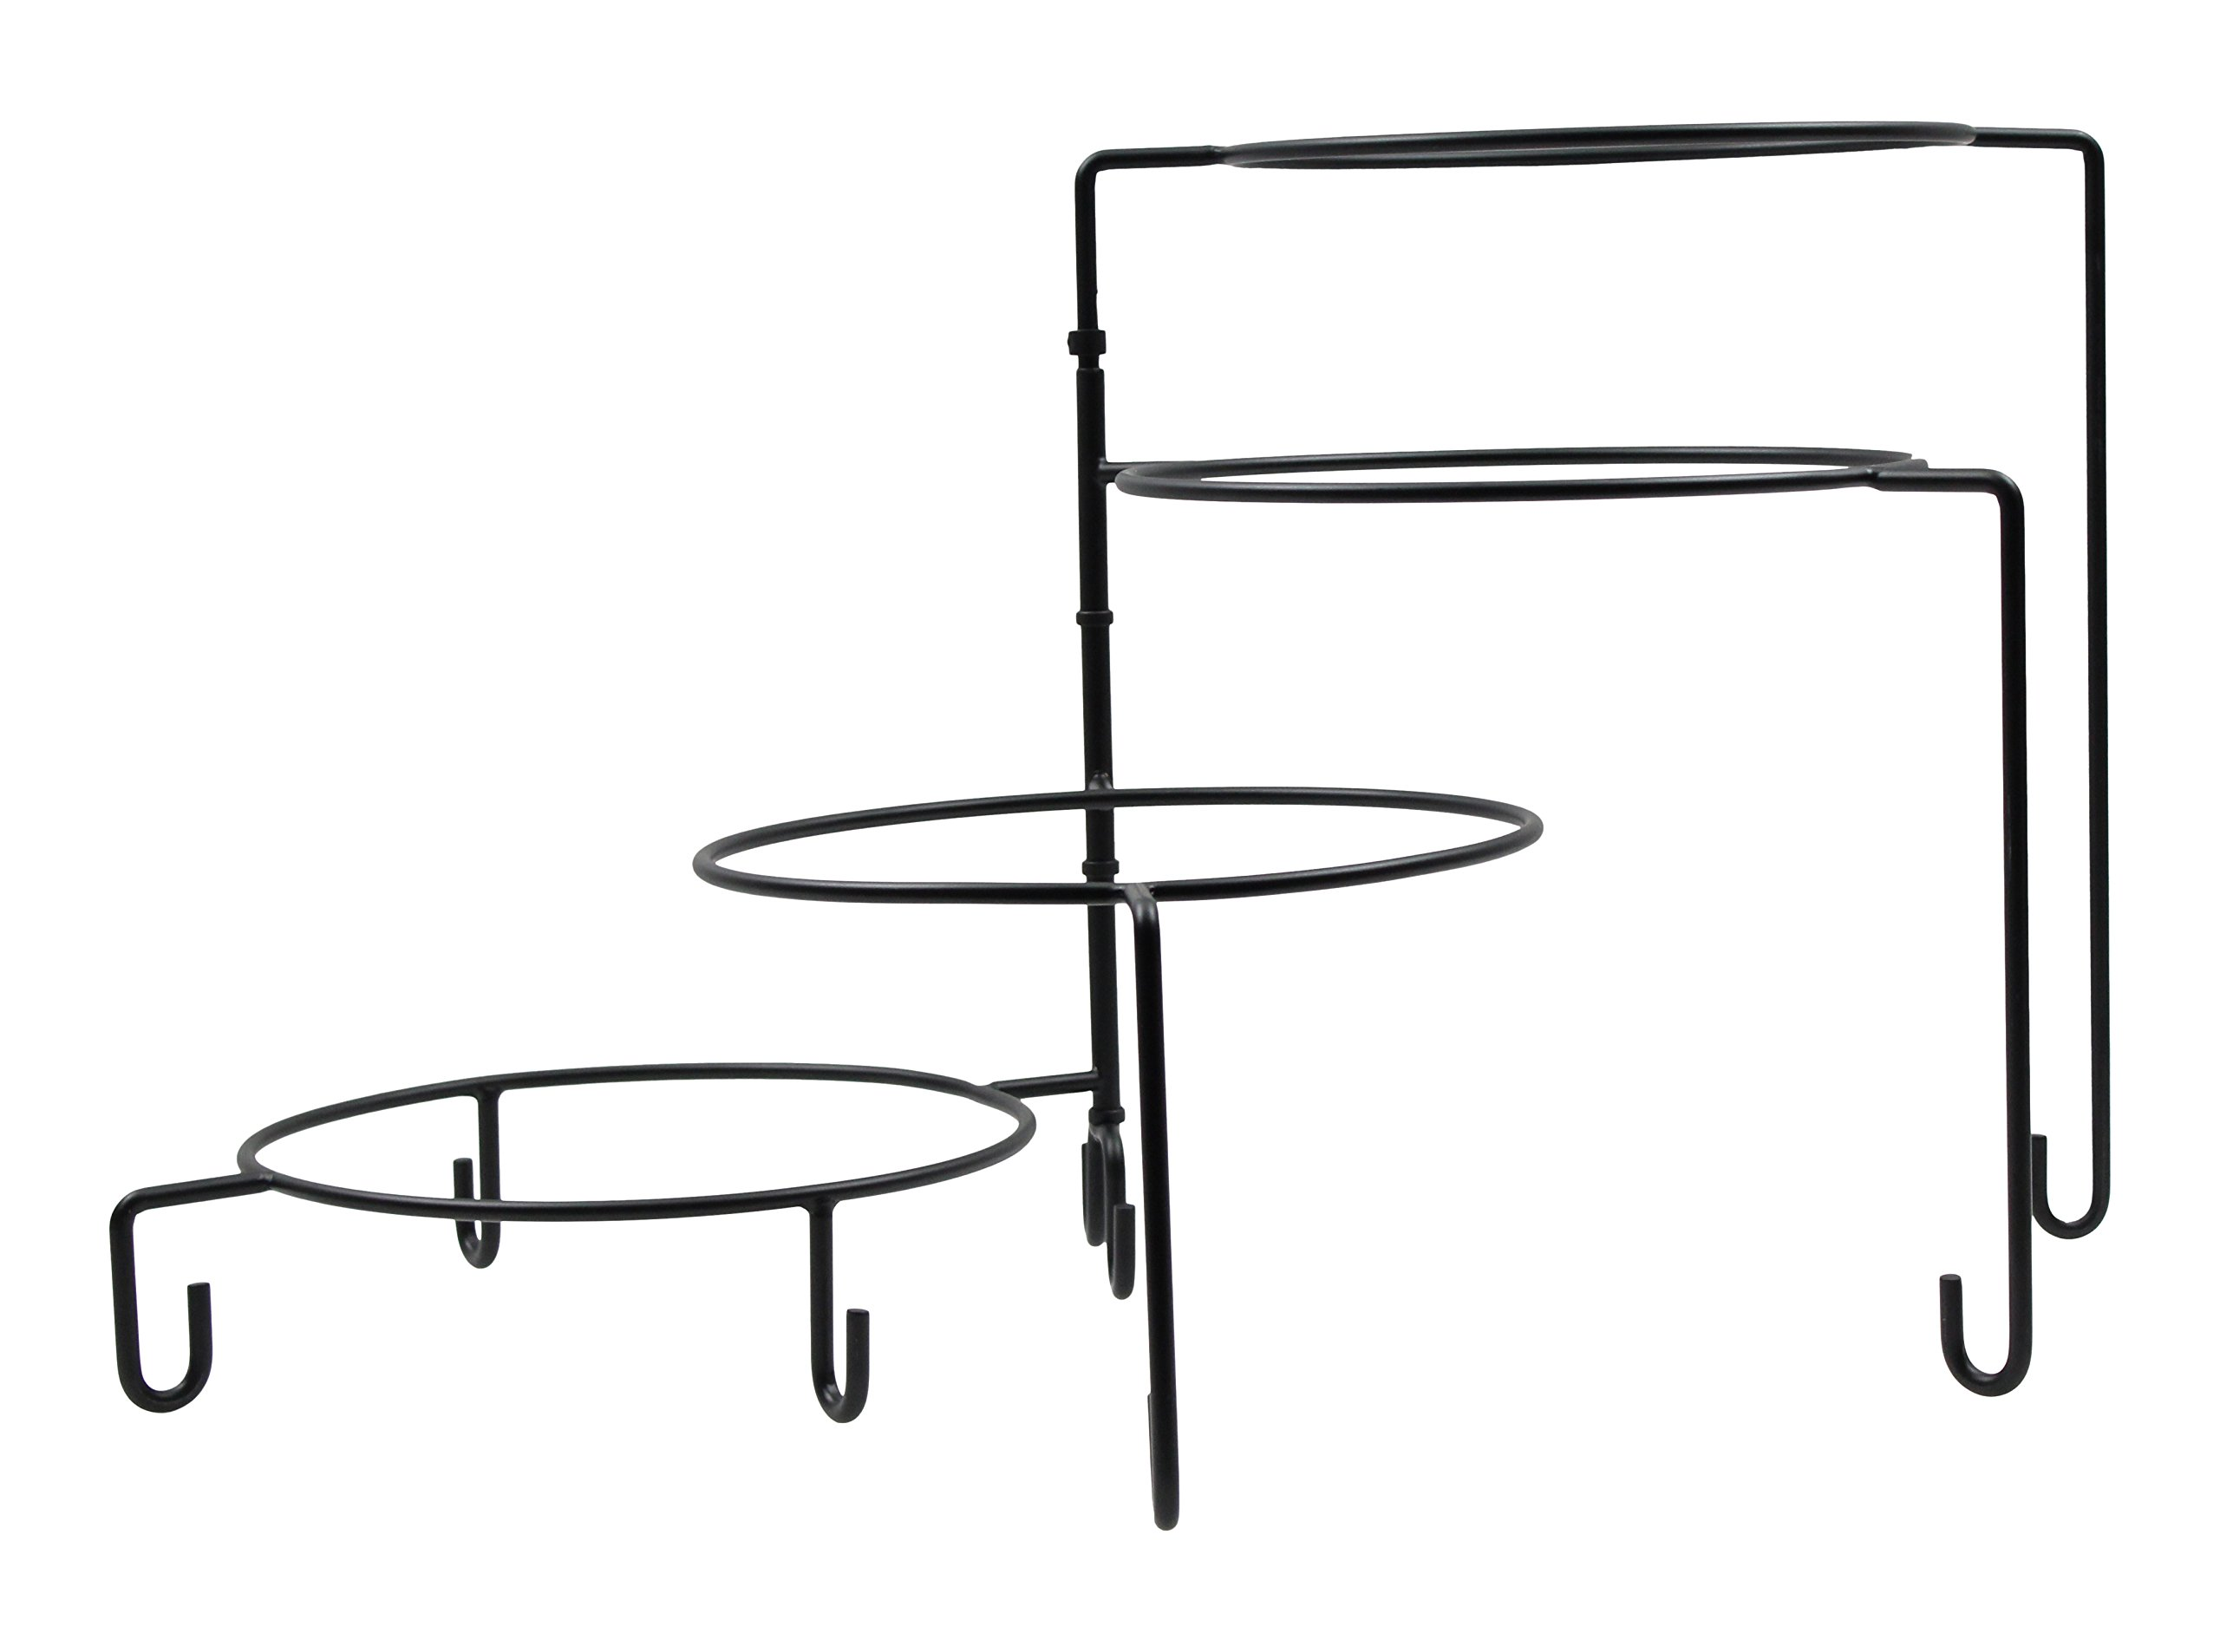 TableCraft Products BKP4 Stand, 4 Tier, 14.5''Height, Black Metal by Tablecraft